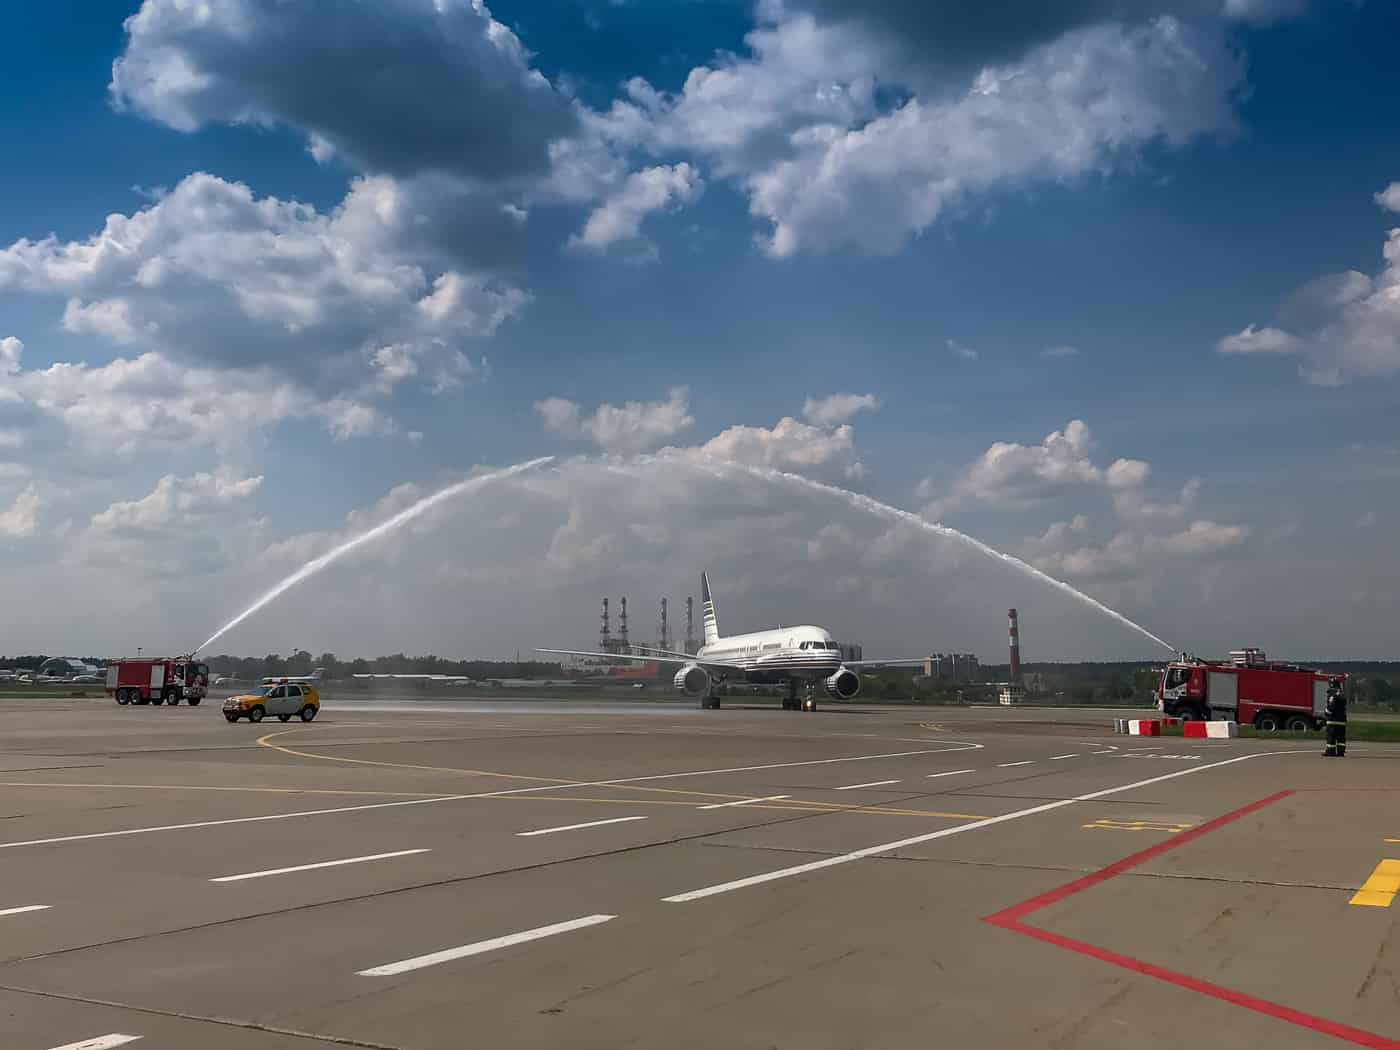 Water Salute, what is it?